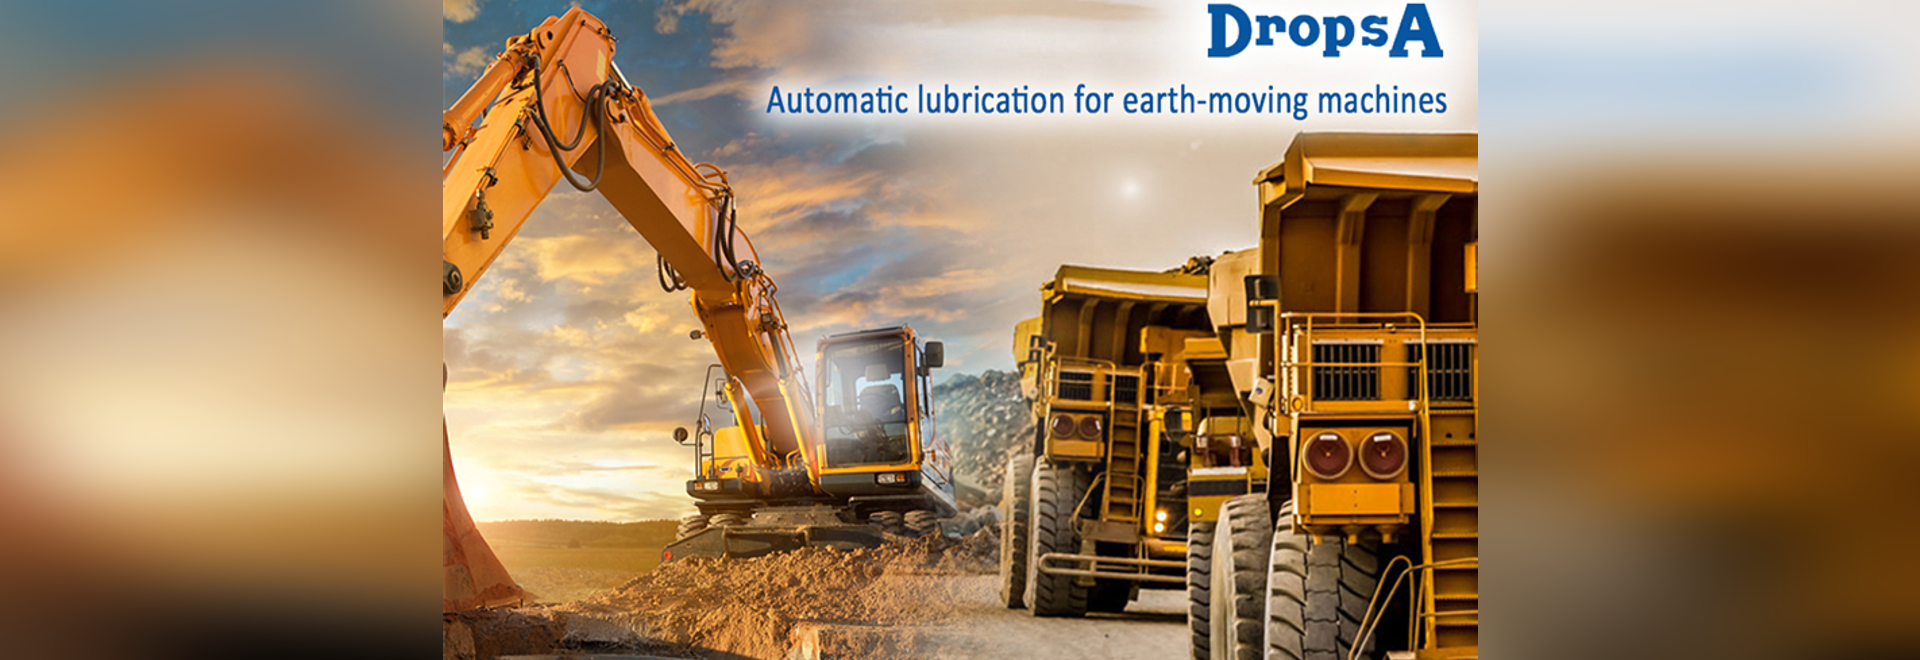 Automatic lubrication for earth-moving machines